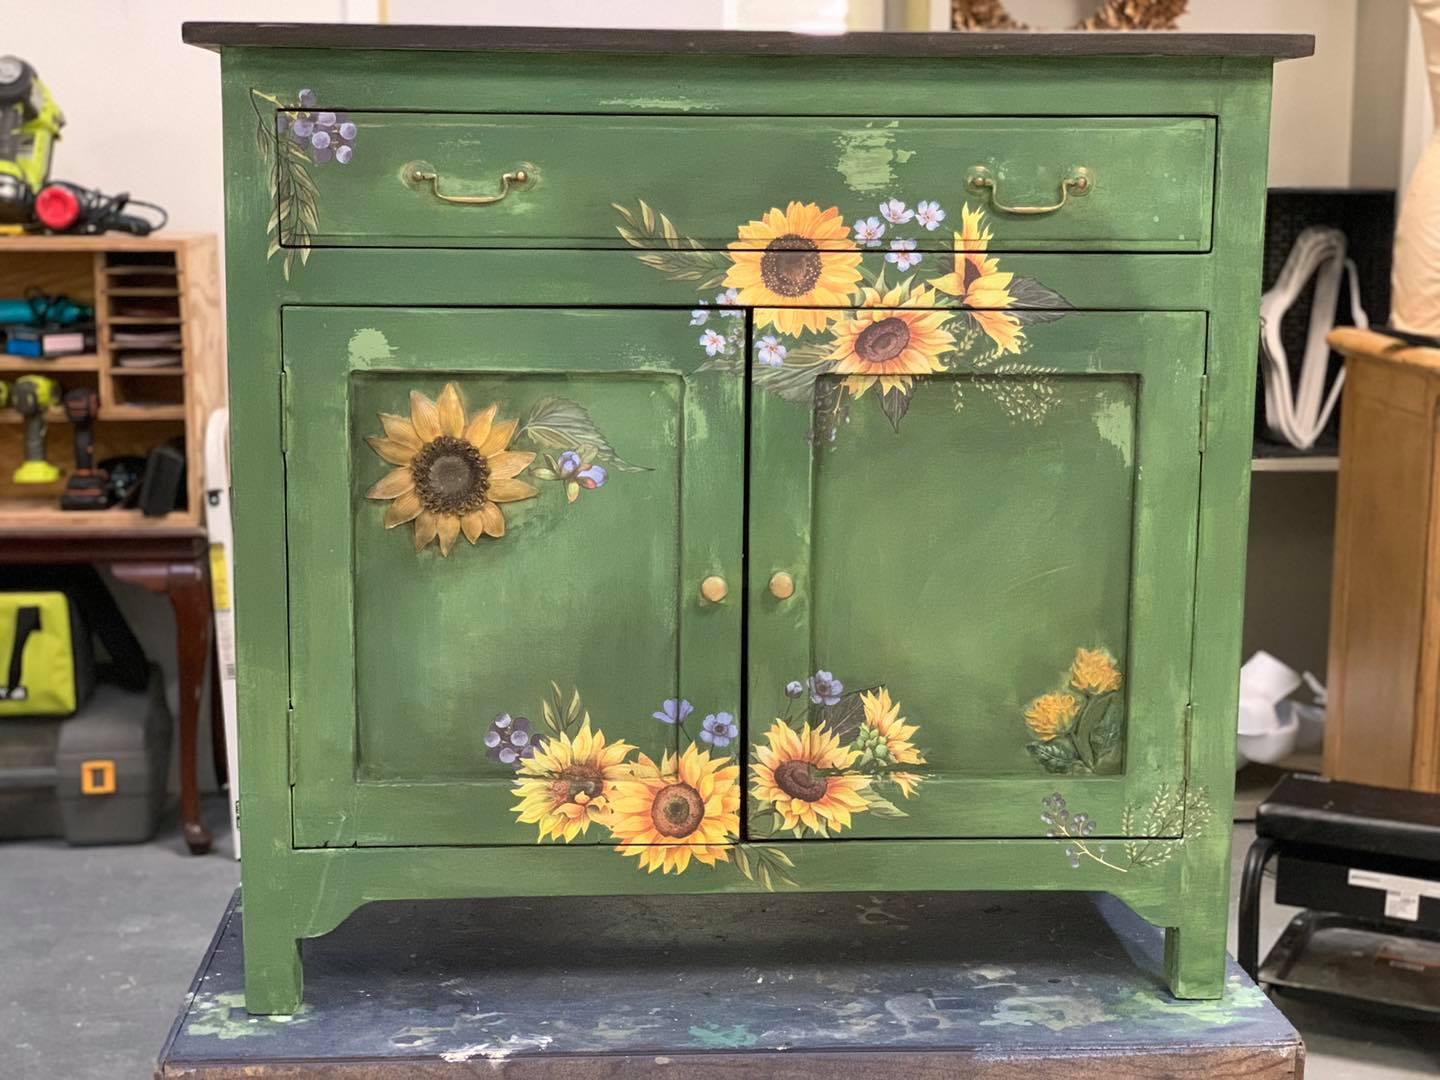 Fall Furniture Painting Contest. Win $500 Cash and show off your skills!